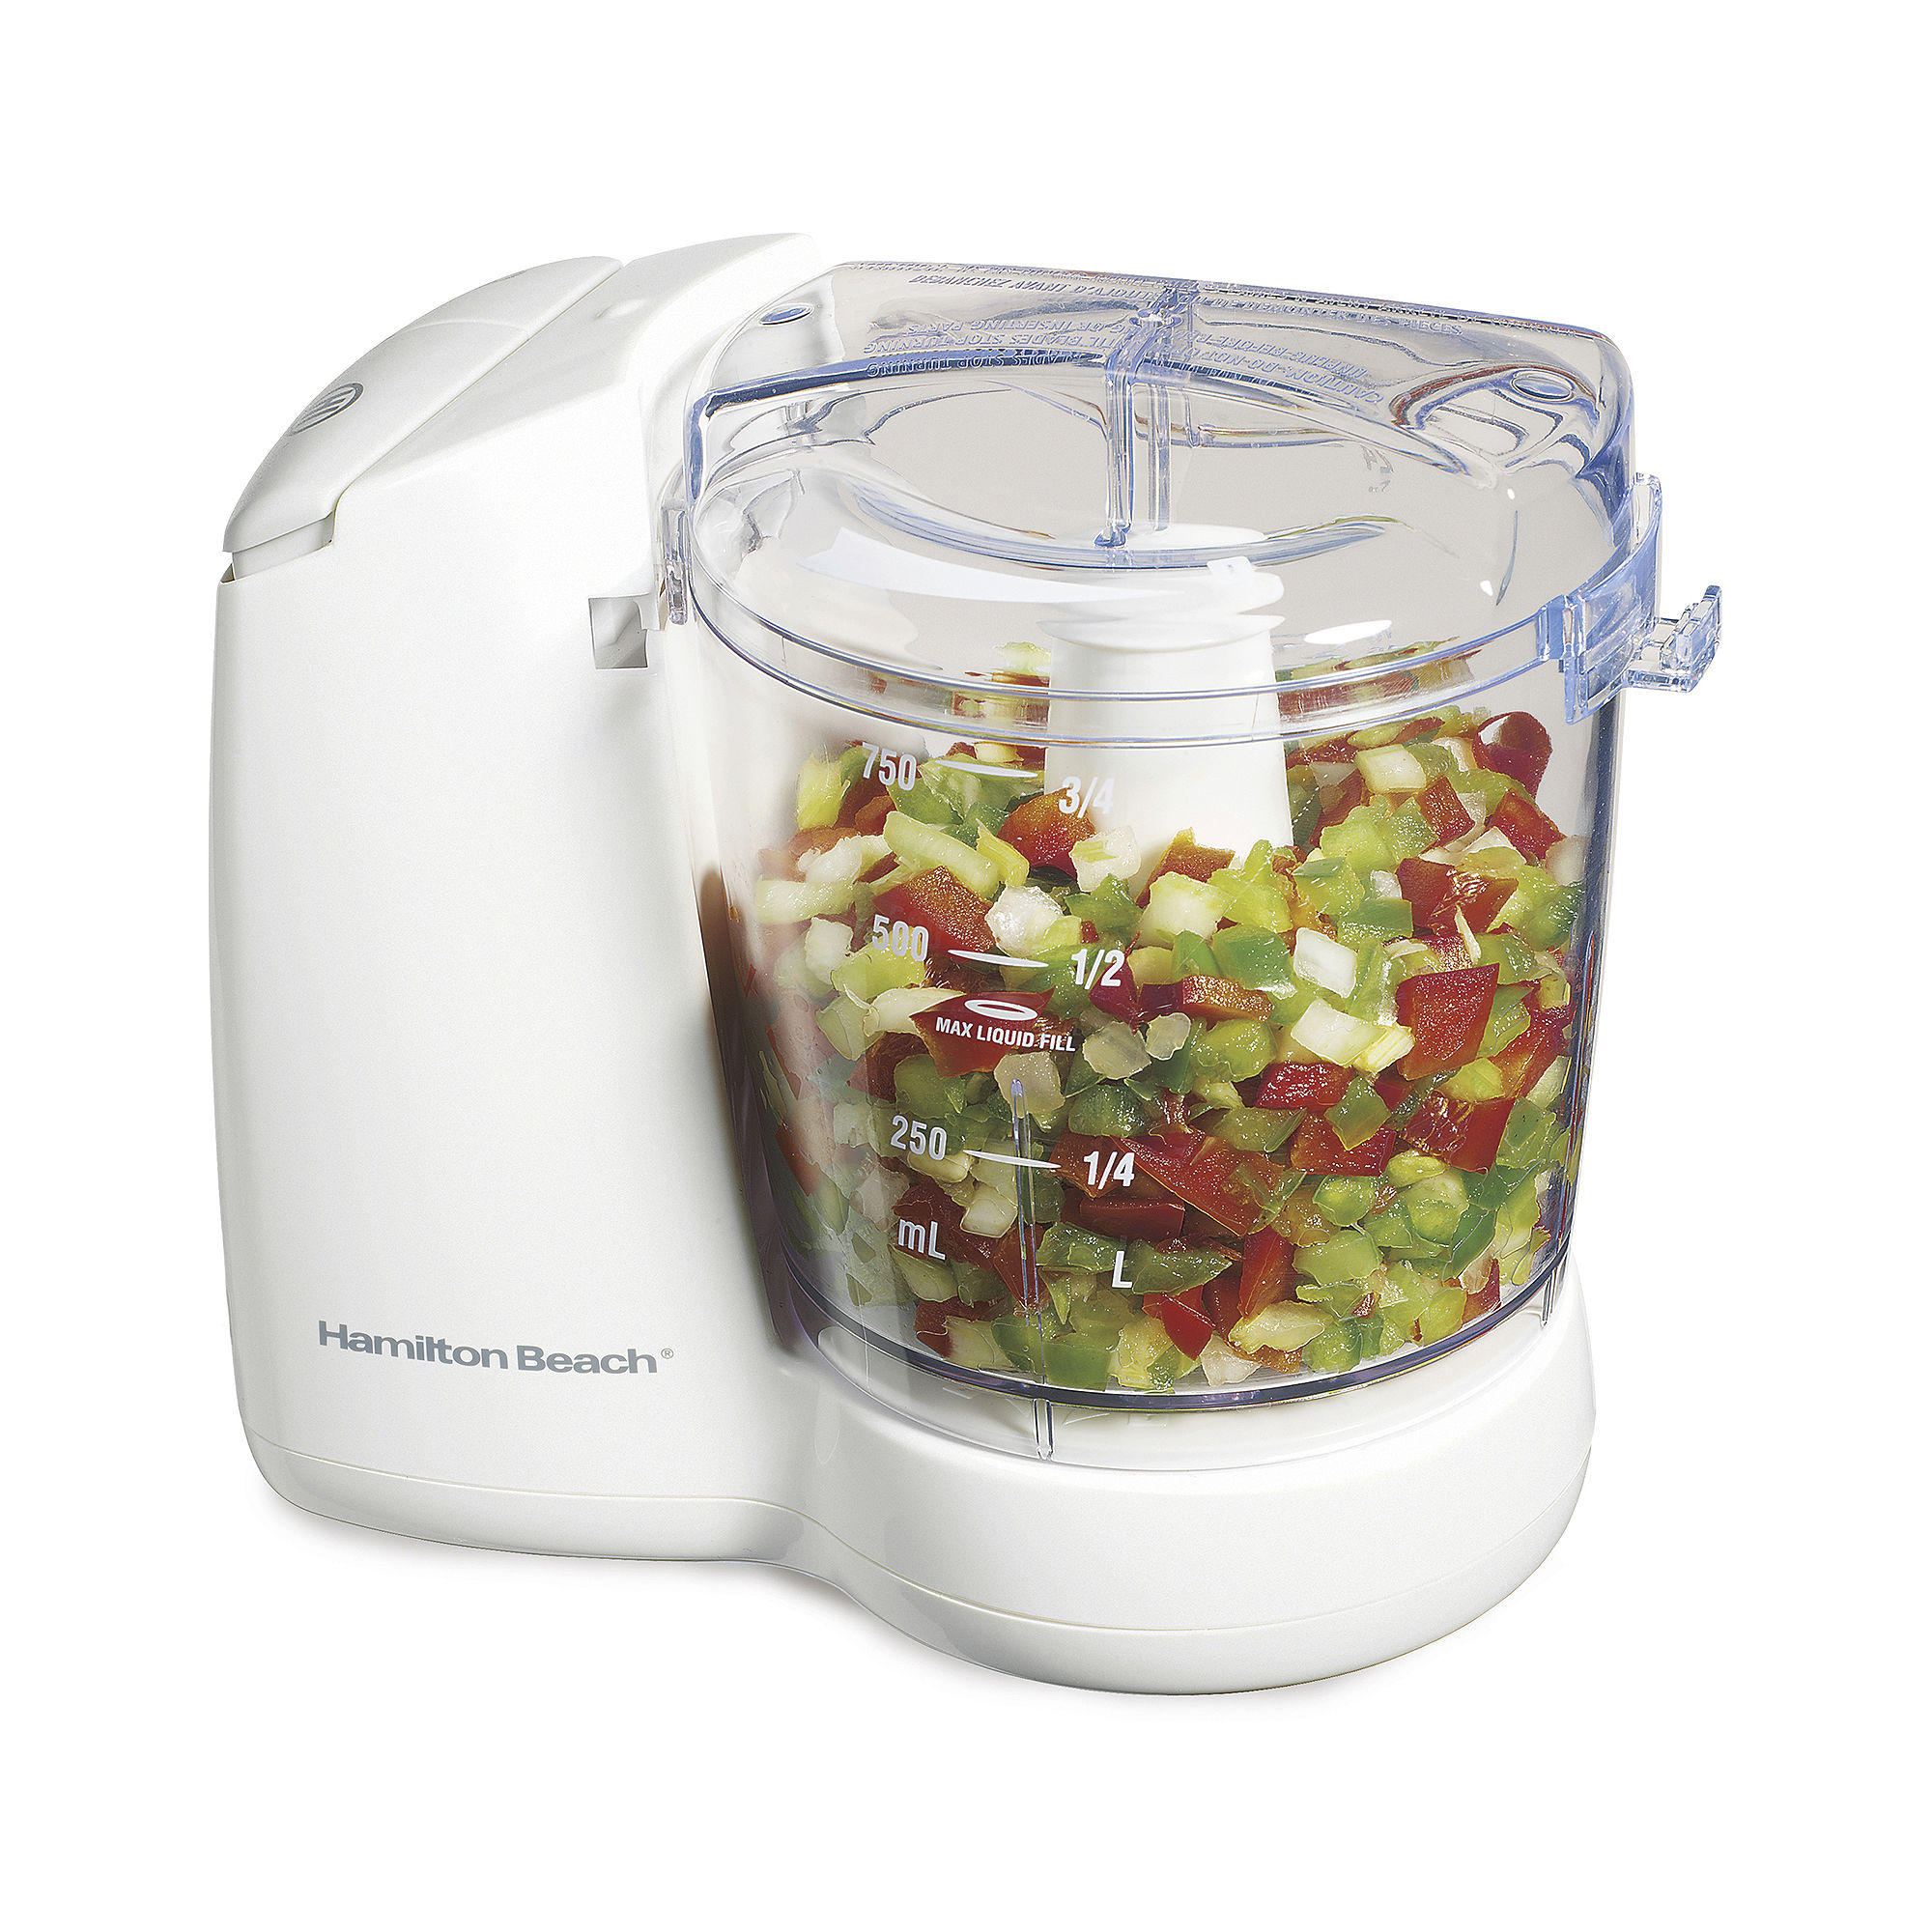 Hamilton Beach FreshChop Food Chopper